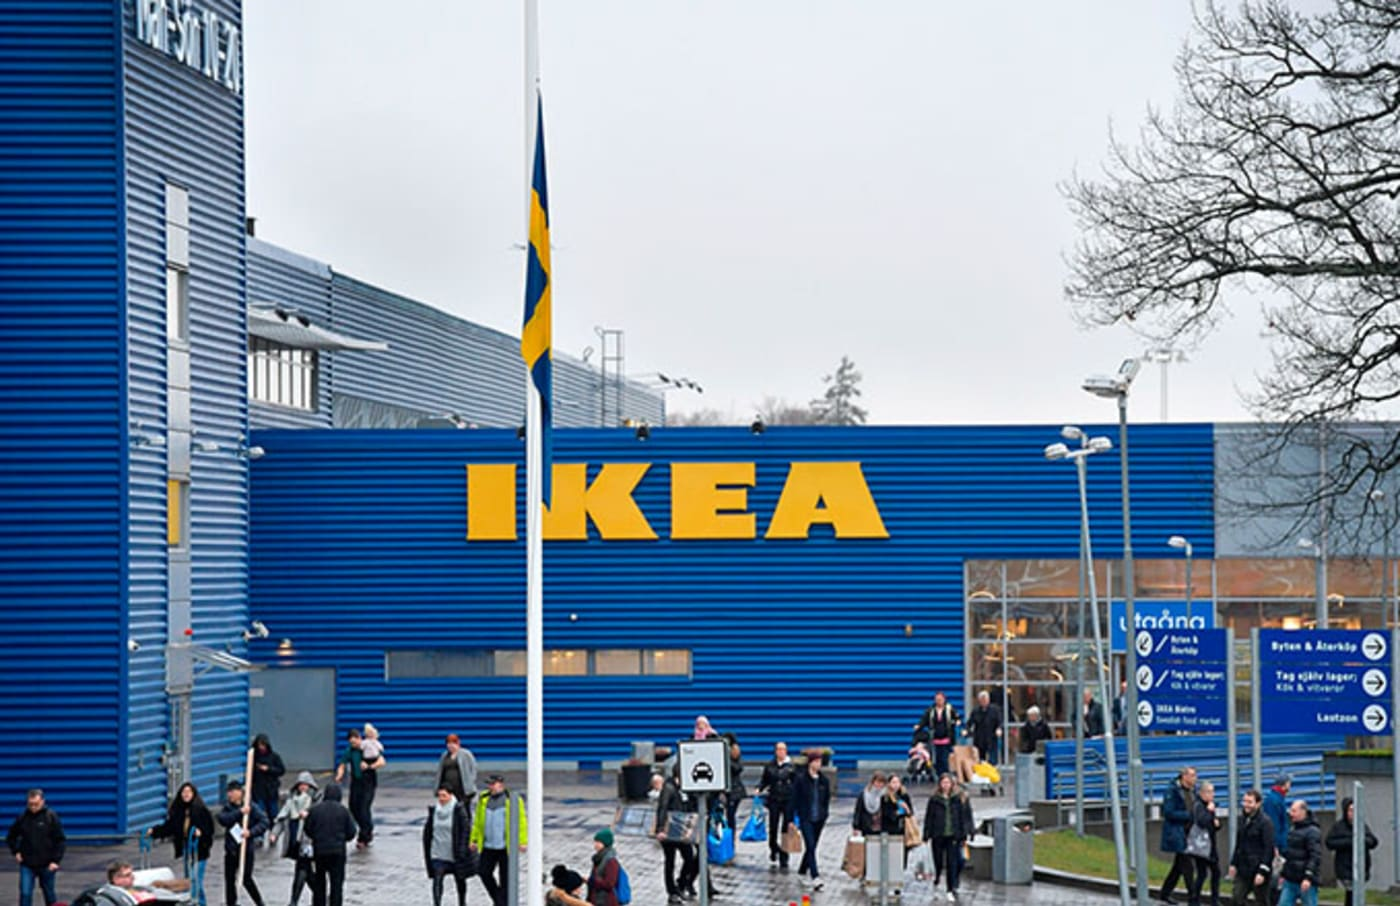 This is a photo of Ikea.